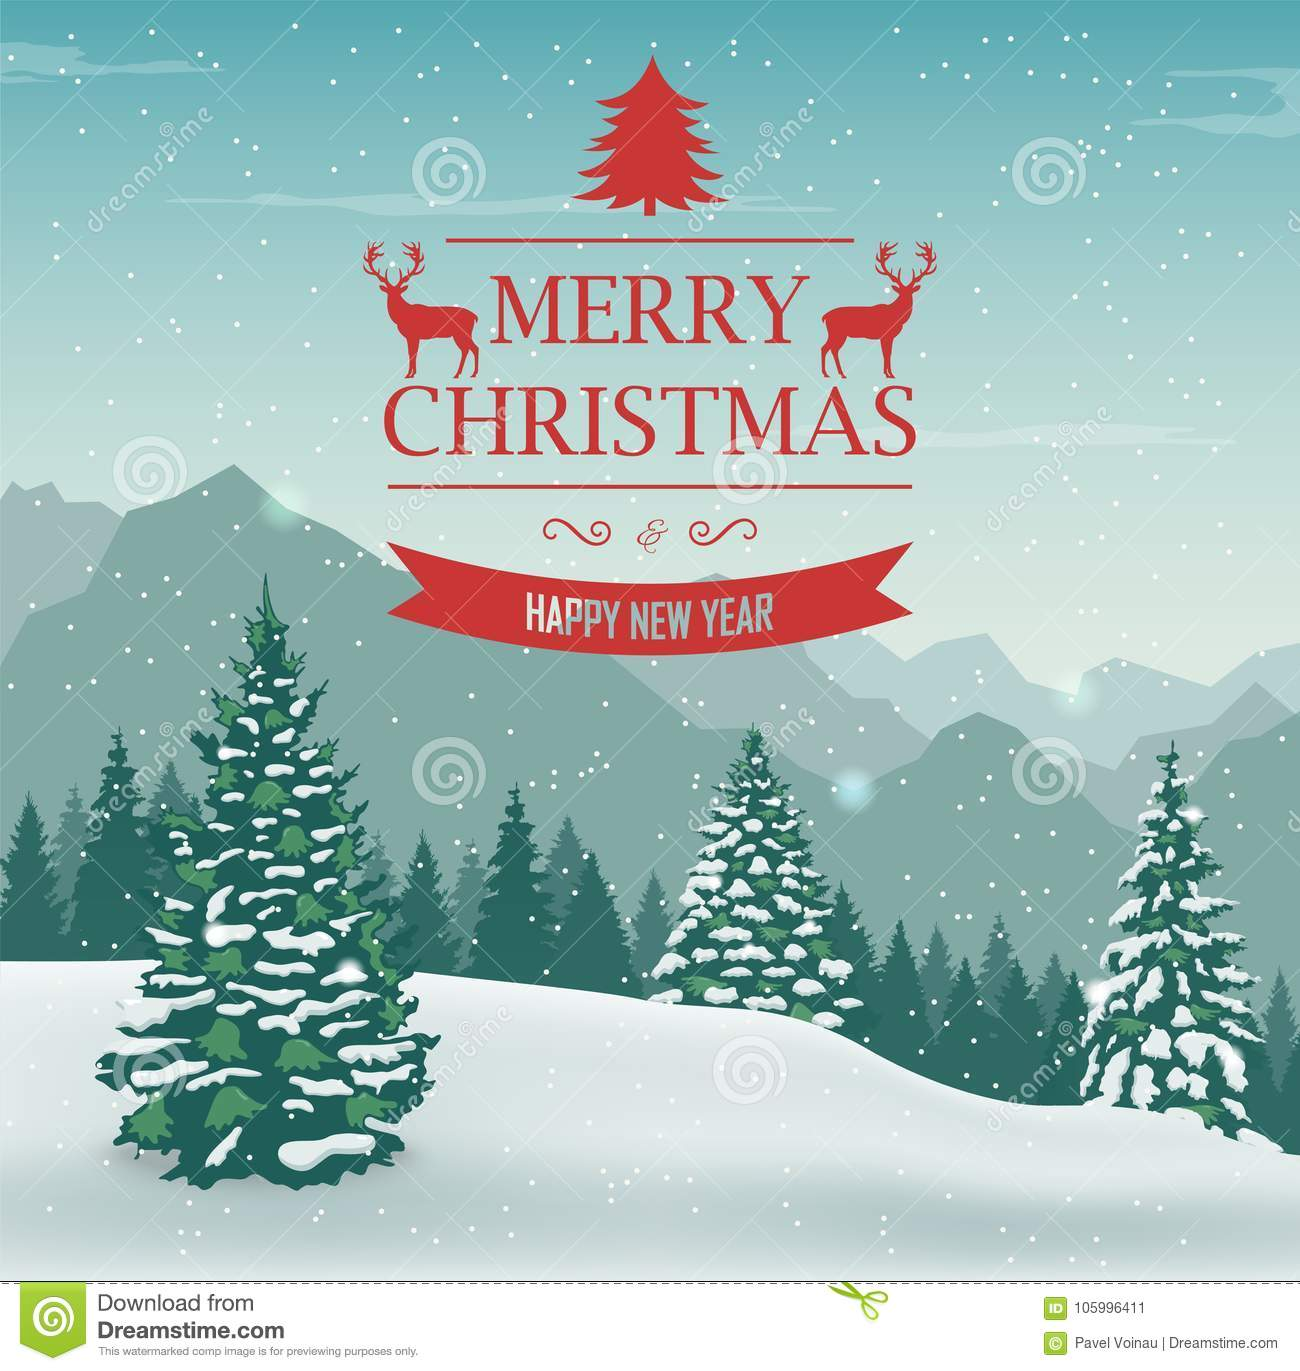 Merry Christmas And Happy New Year Greeting Card Winter